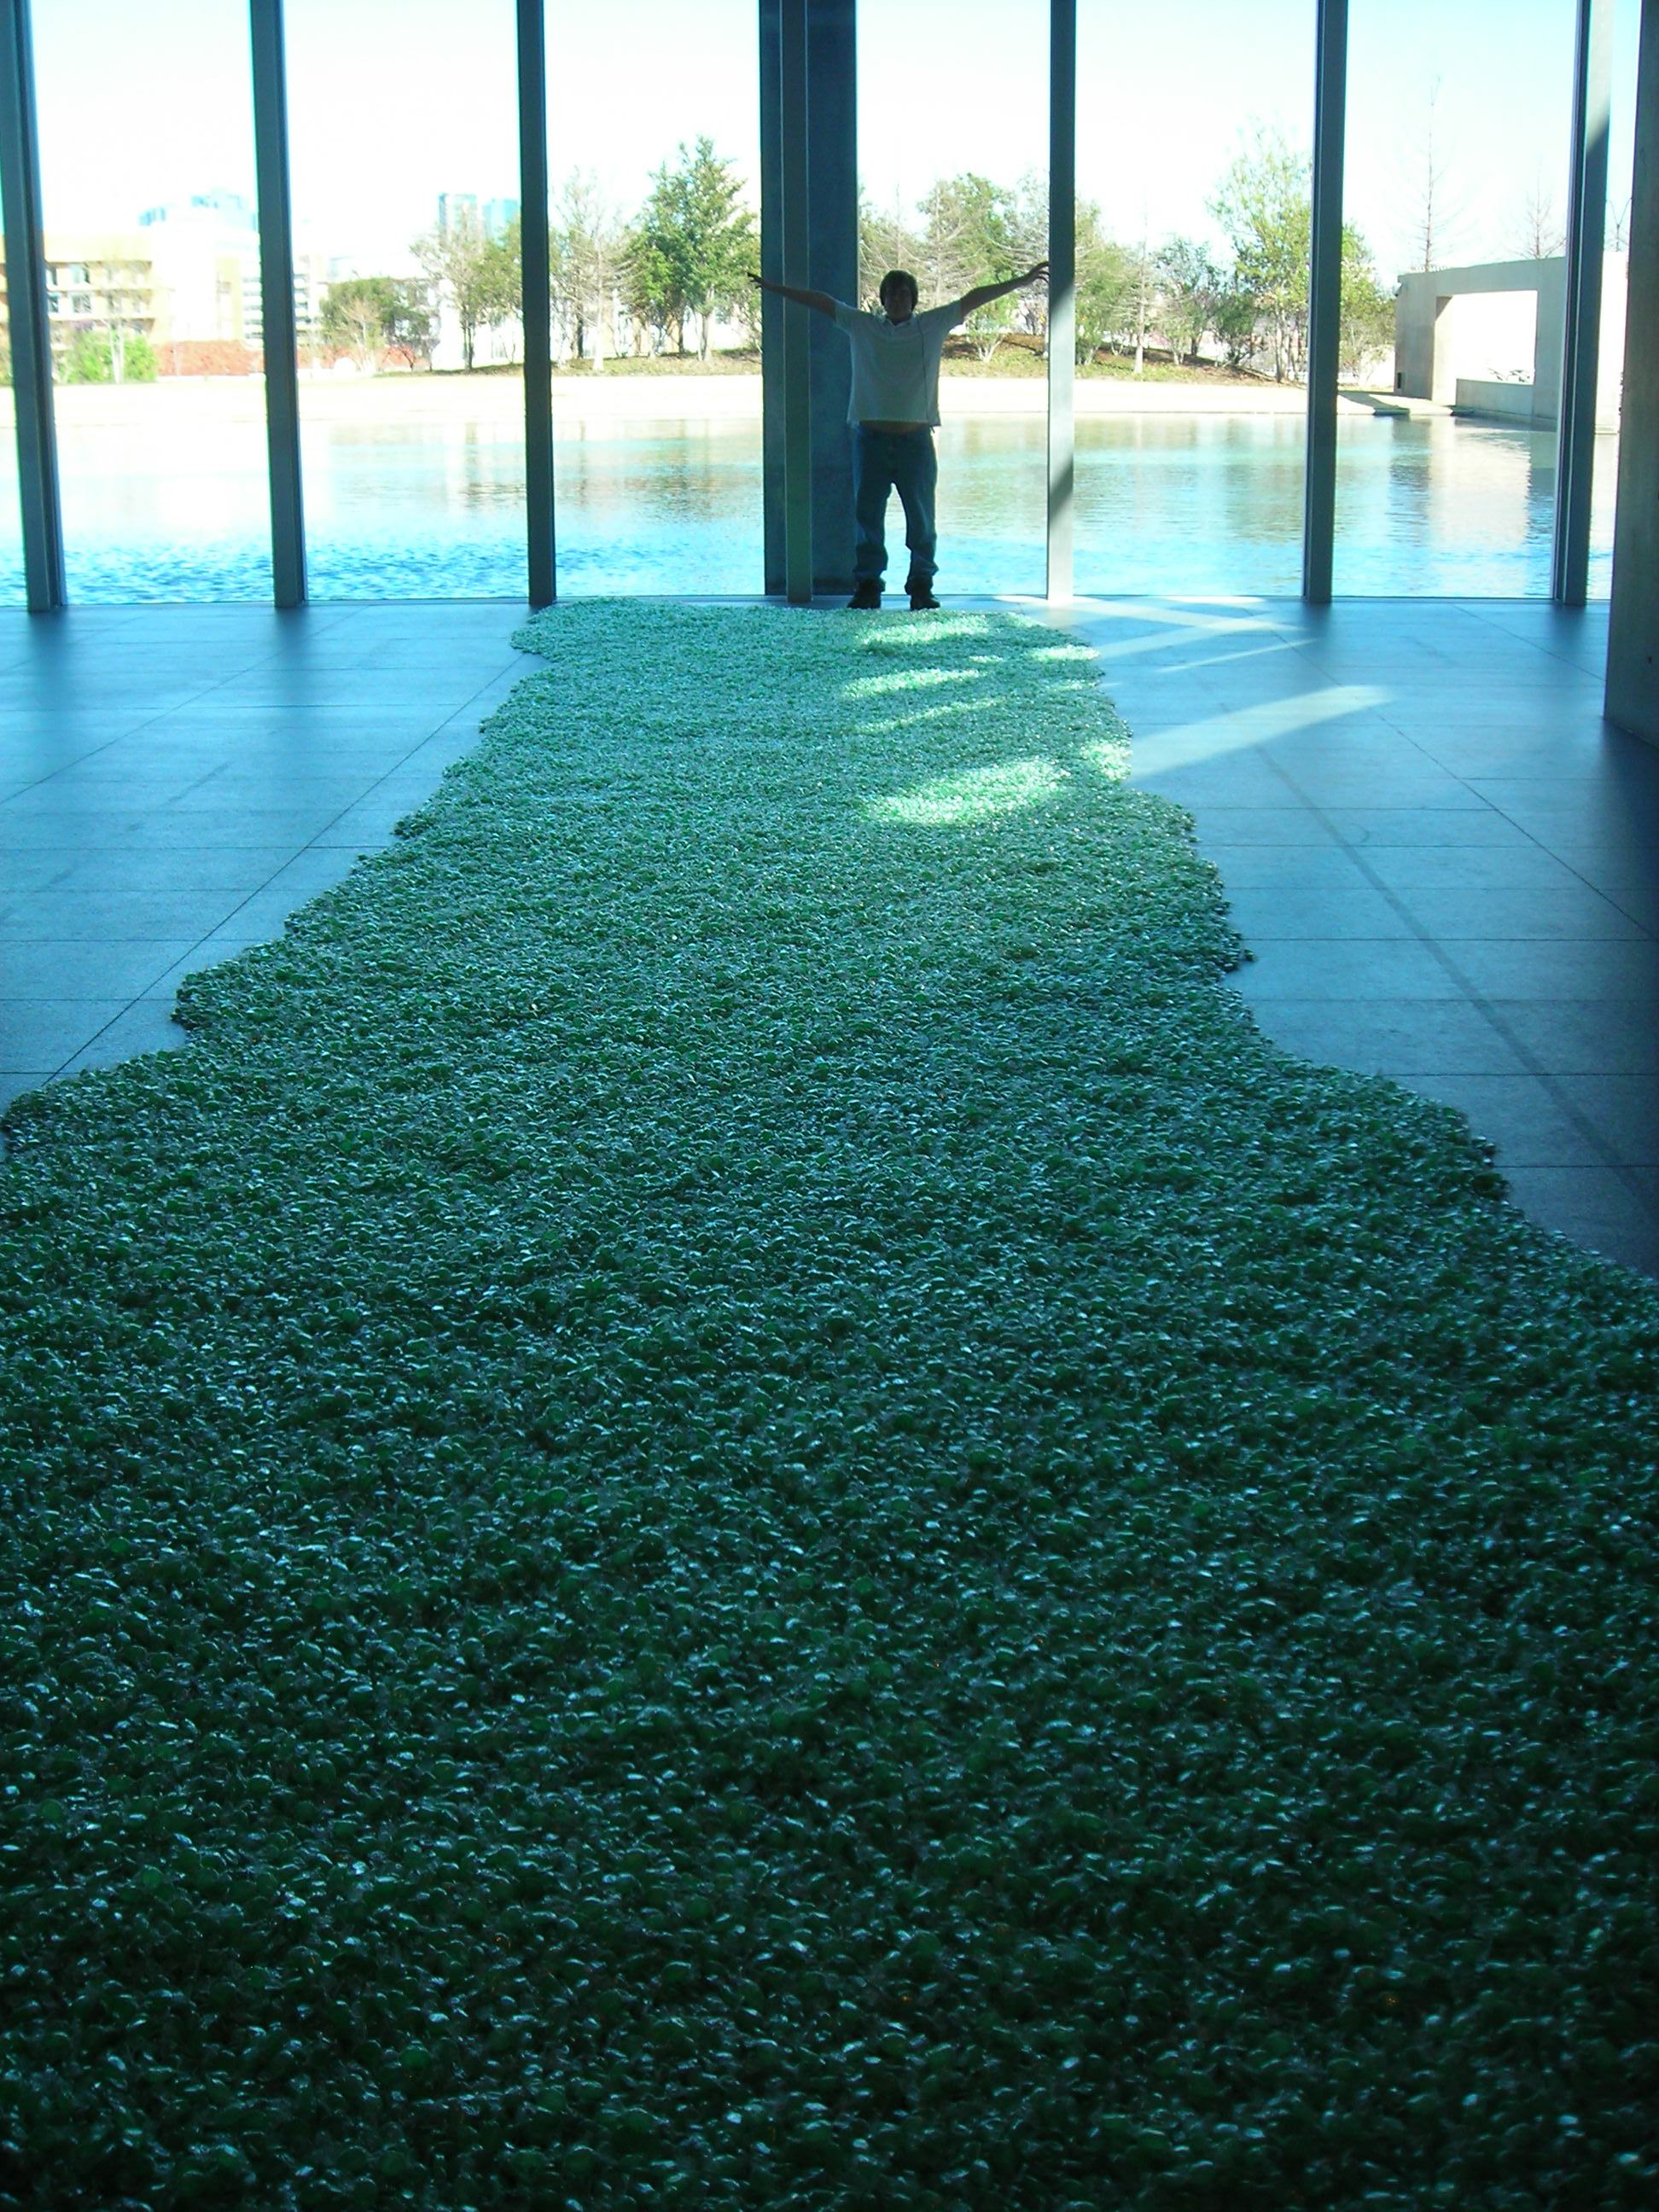 that's my baby at the end of this 'art' exhibit ... nothing but green cellophane-wrapped candies on the floor. art. modern, that is.